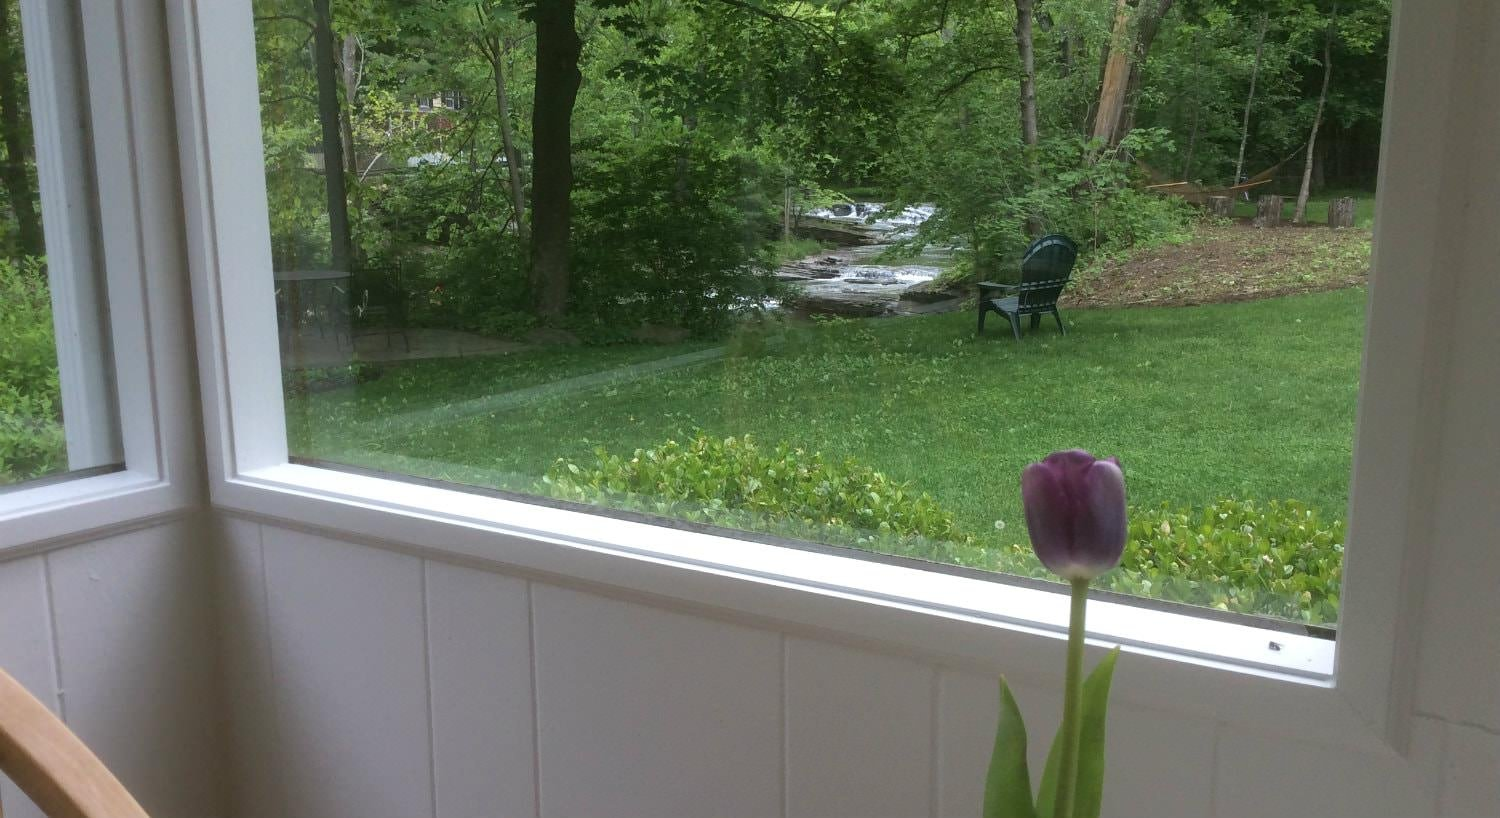 View through the window of a grassy lawn, a rippling stream, and lots of green trees